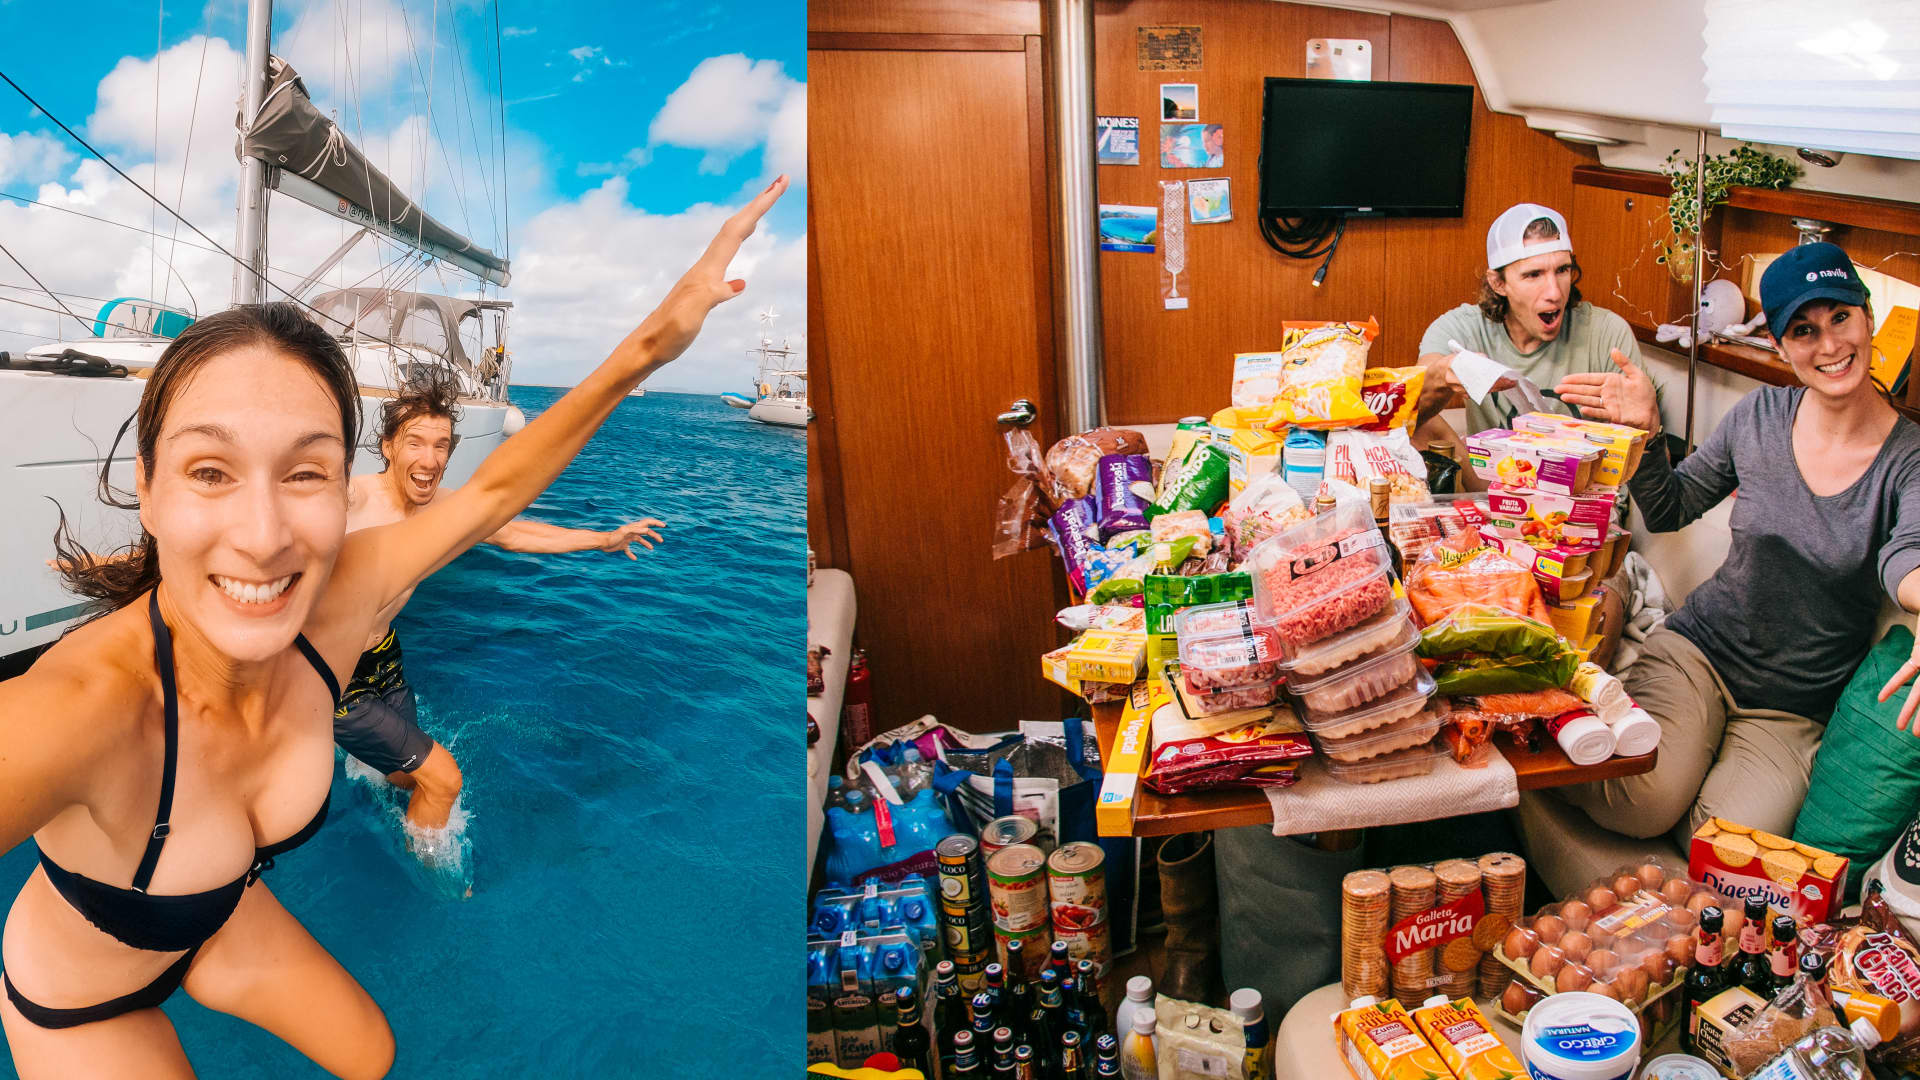 Yacht owners have budgets too, said Sophie Darsy who along with Ryan Ellison, spend about $3,500 a month for boat maintenance, data plans, groceries, the occasional marina stay and activities such as diving, windsurfing and car rentals.